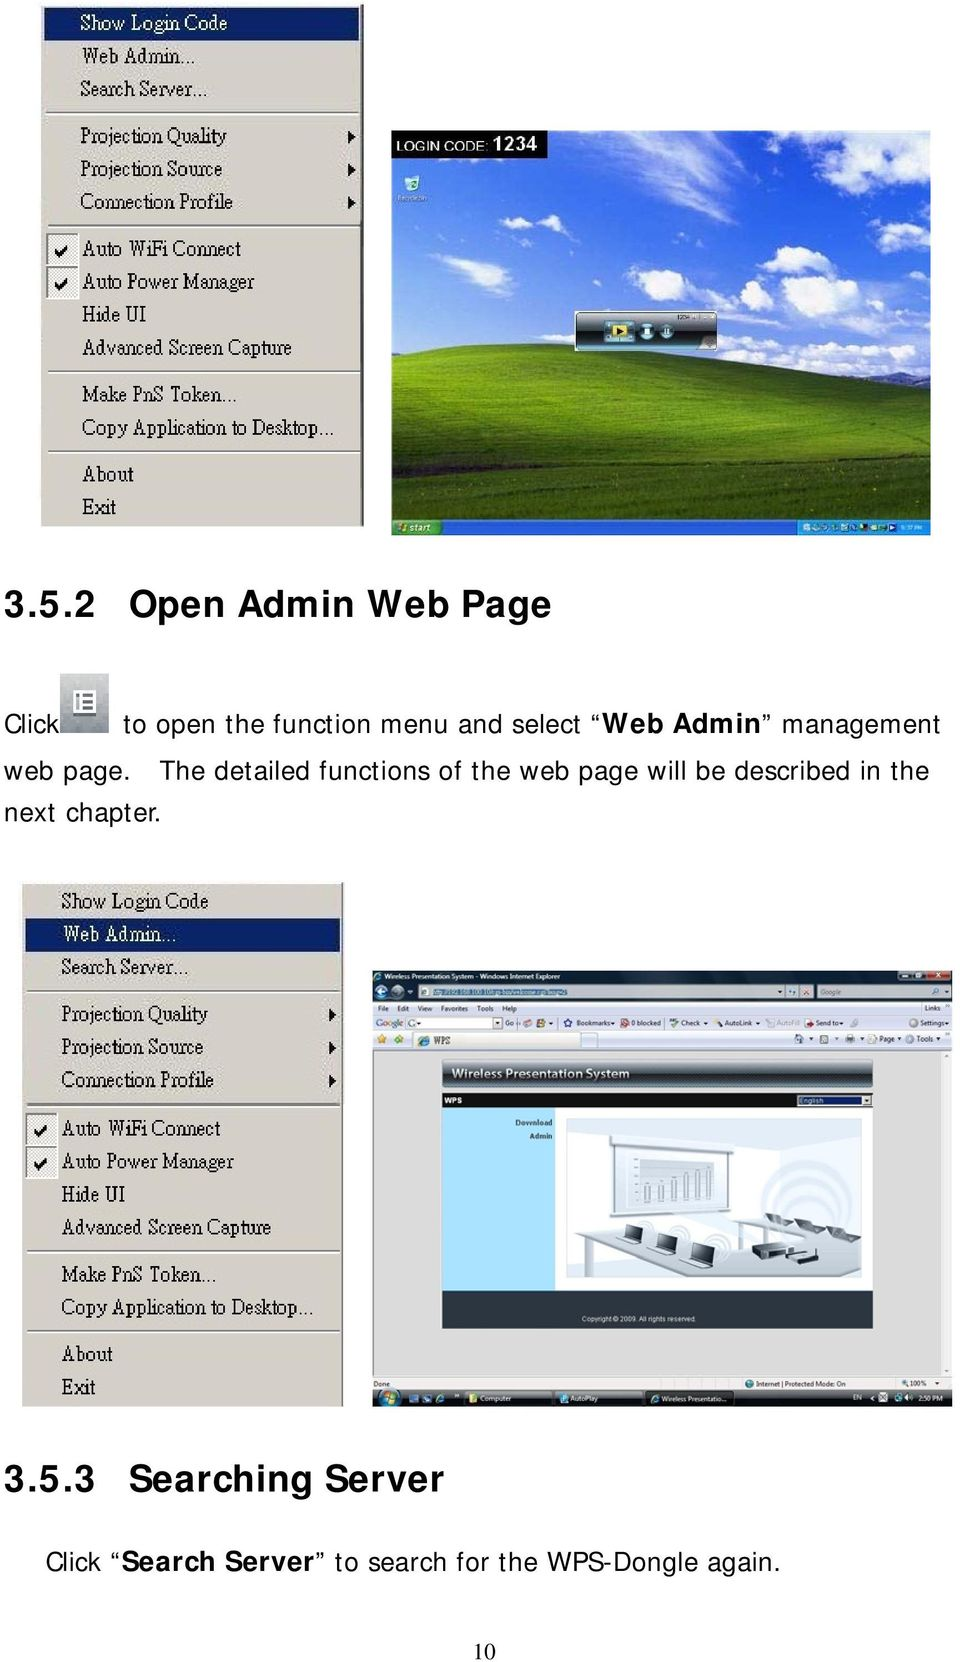 The detailed functions of the web page will be described in the